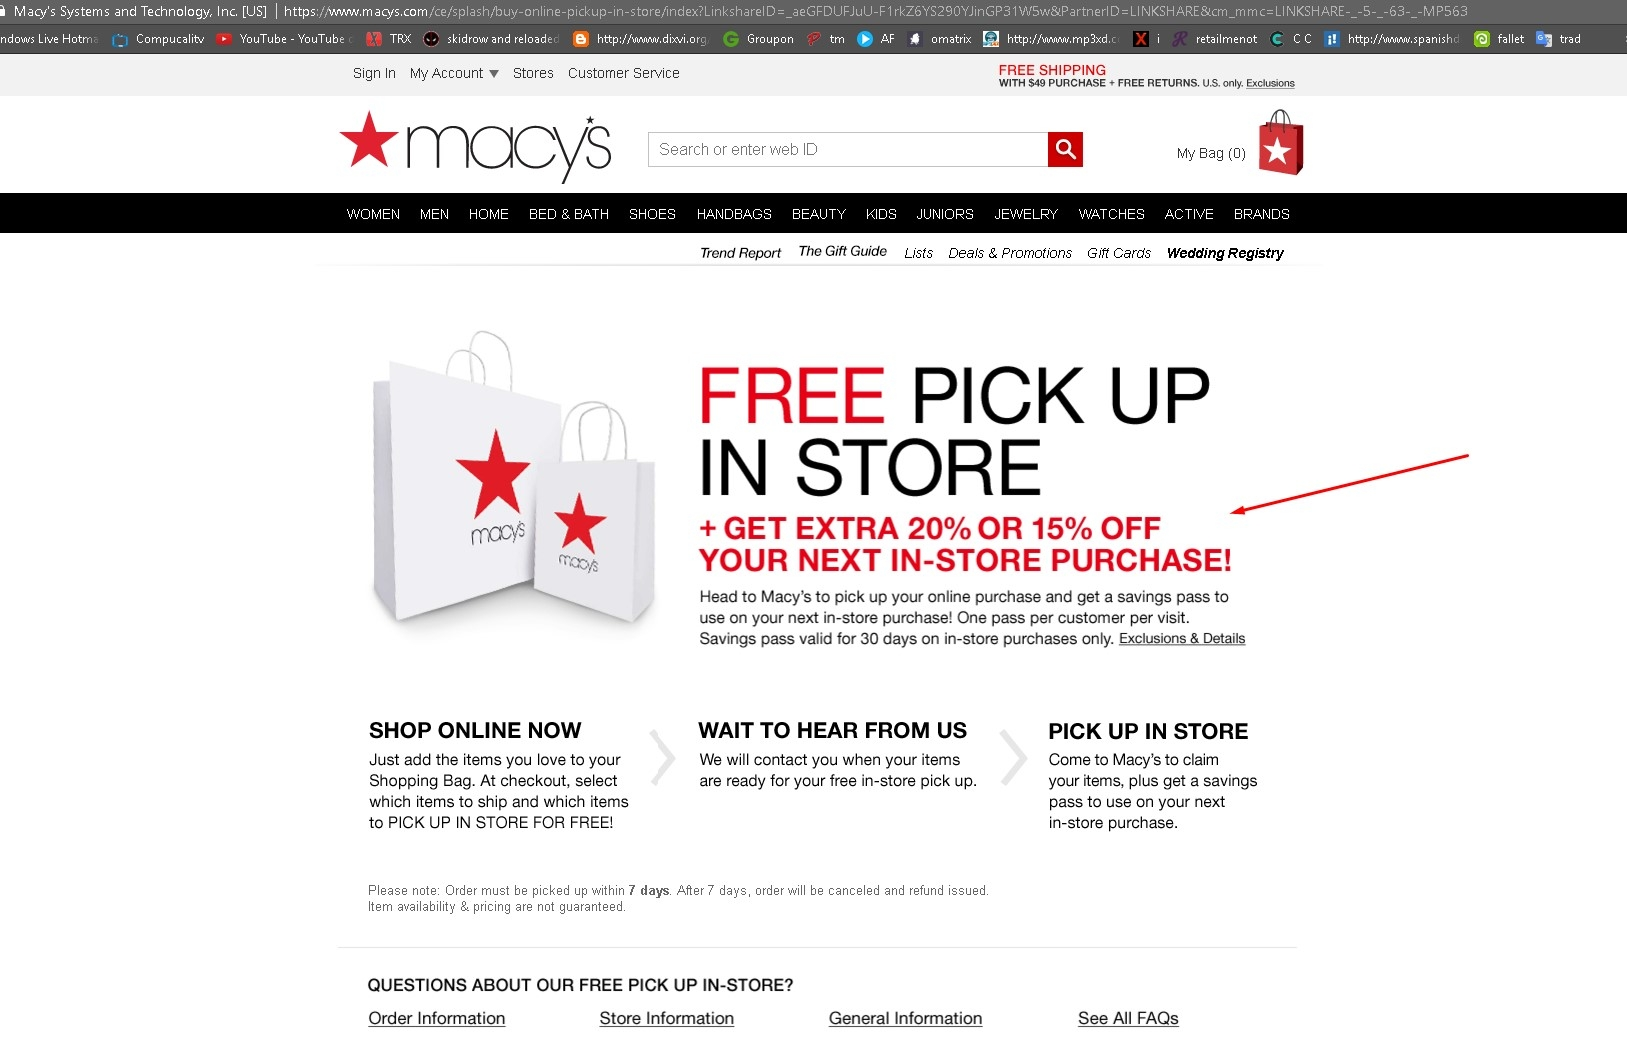 How to use In-Store Printable Coupons You can either print out the coupon or show it on your mobile device to save on your next trip to any Macy's location. Contact Info: You can reach Macy's customers service by phone at: () or by Email. Shoppers can typically save between 15% - 20% off throughout the store with some brand exceptions.